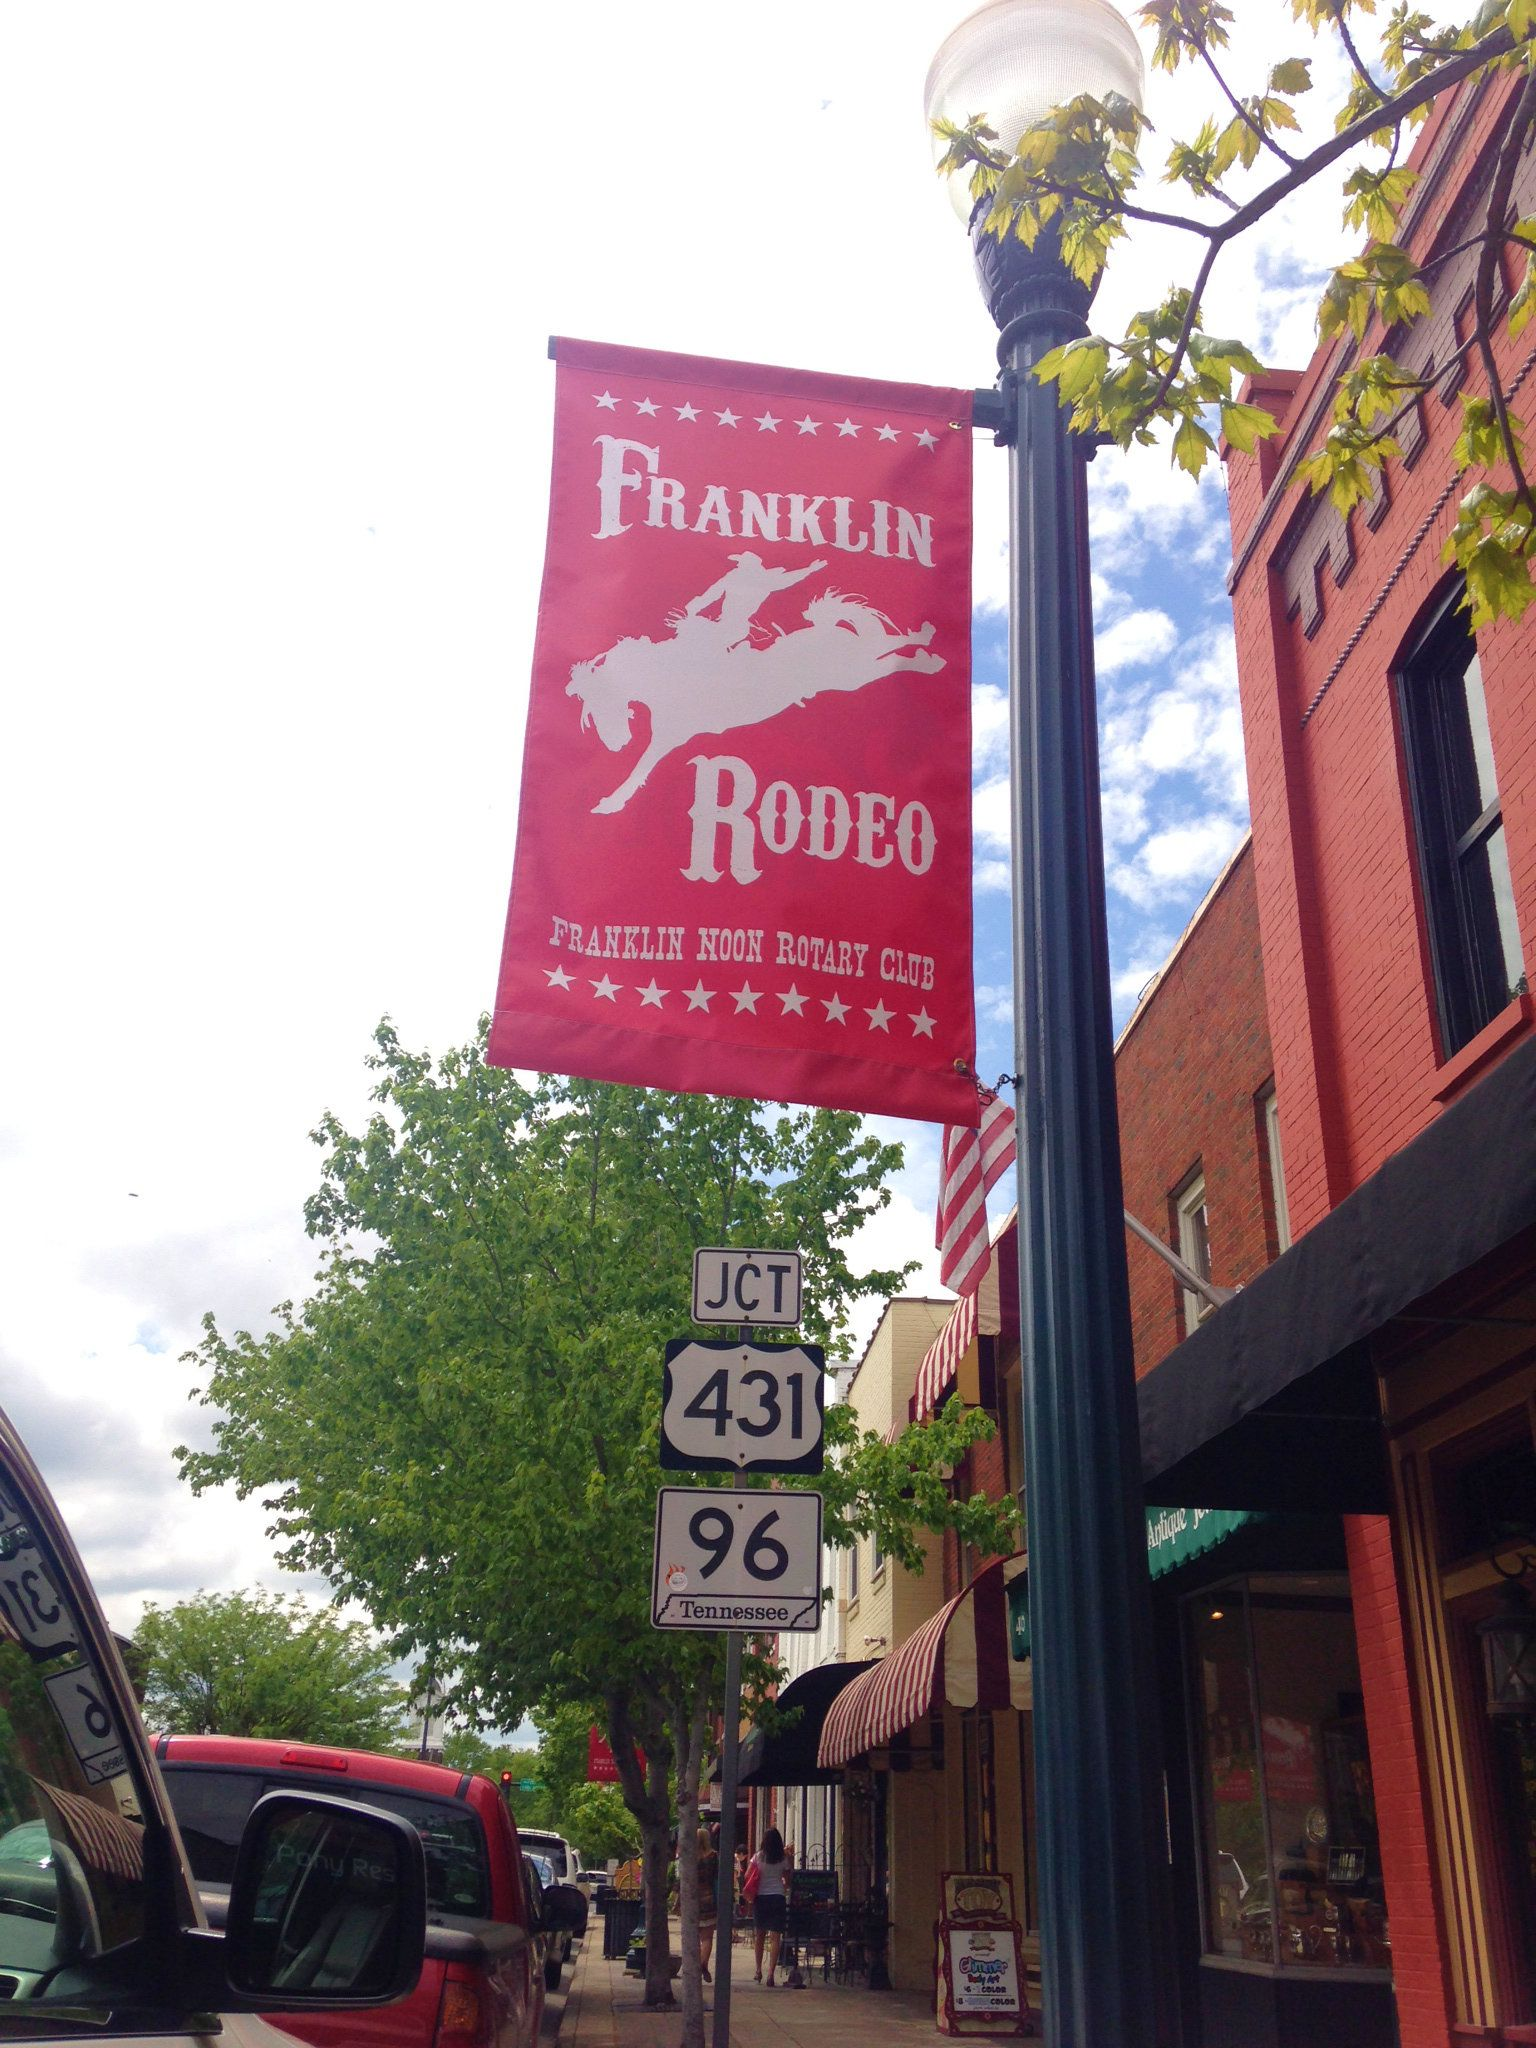 Franklin Rodeo Banners In Downtown Franklin Tn